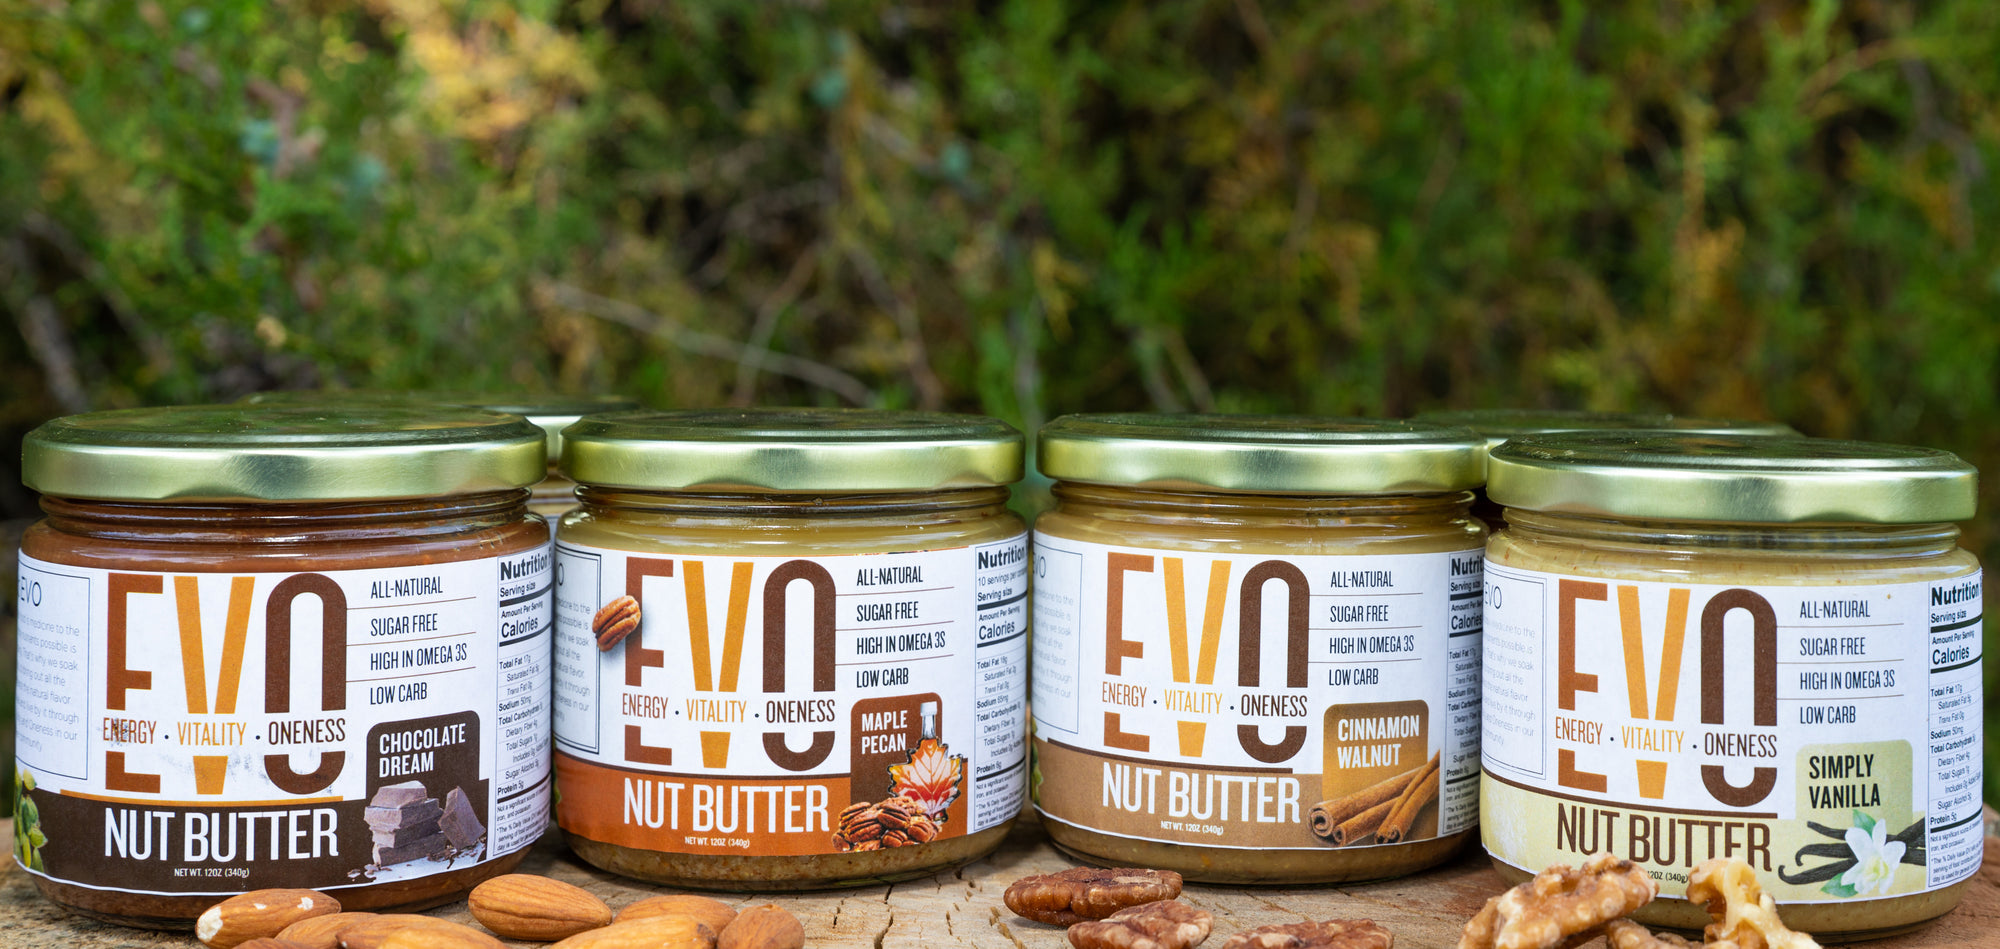 Evo Nut Butter Simply Vanilla Cinnamon Walnut Chocolate Dream Maple Pecan